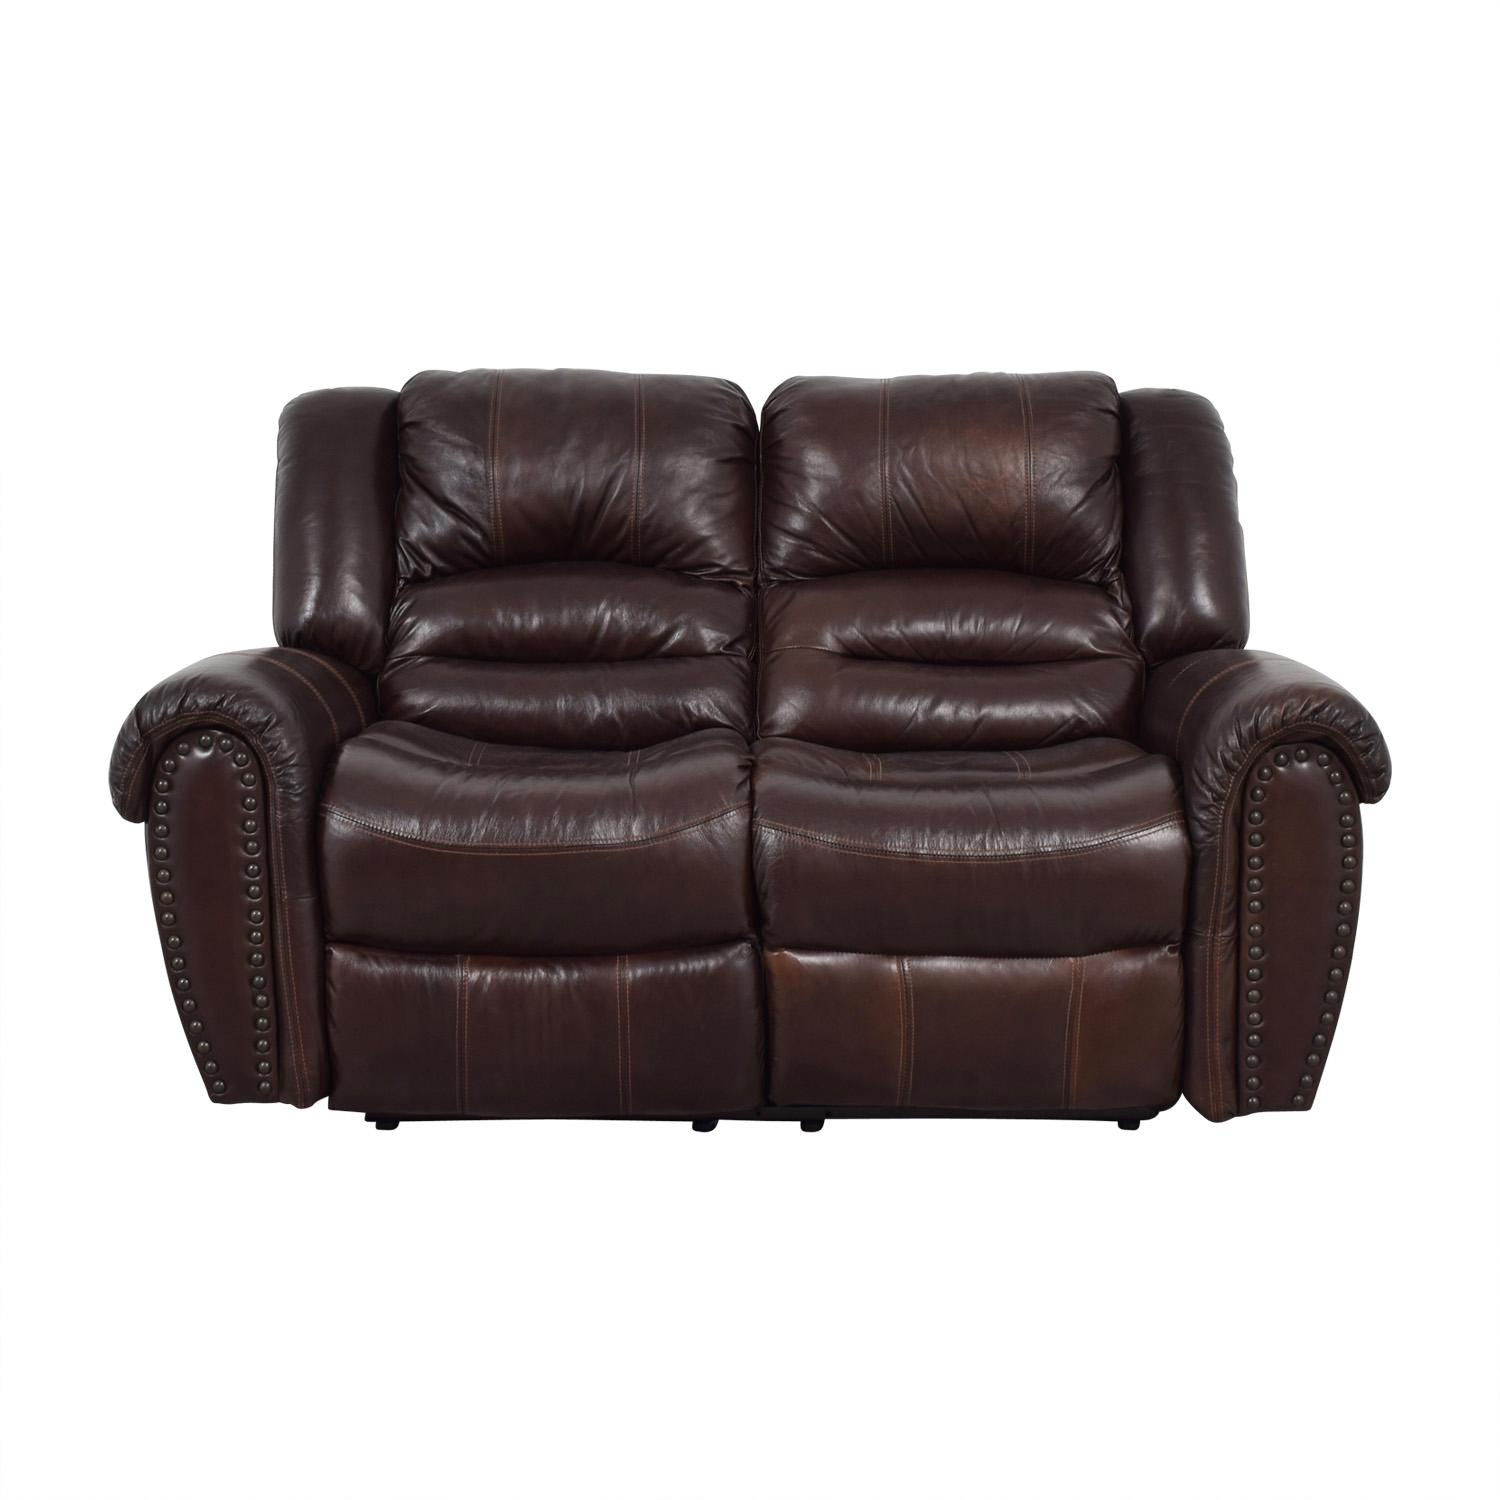 Raymour & Flanigan Raymour & Flanigan Brown Leather Double Reclining Loveseat coupon